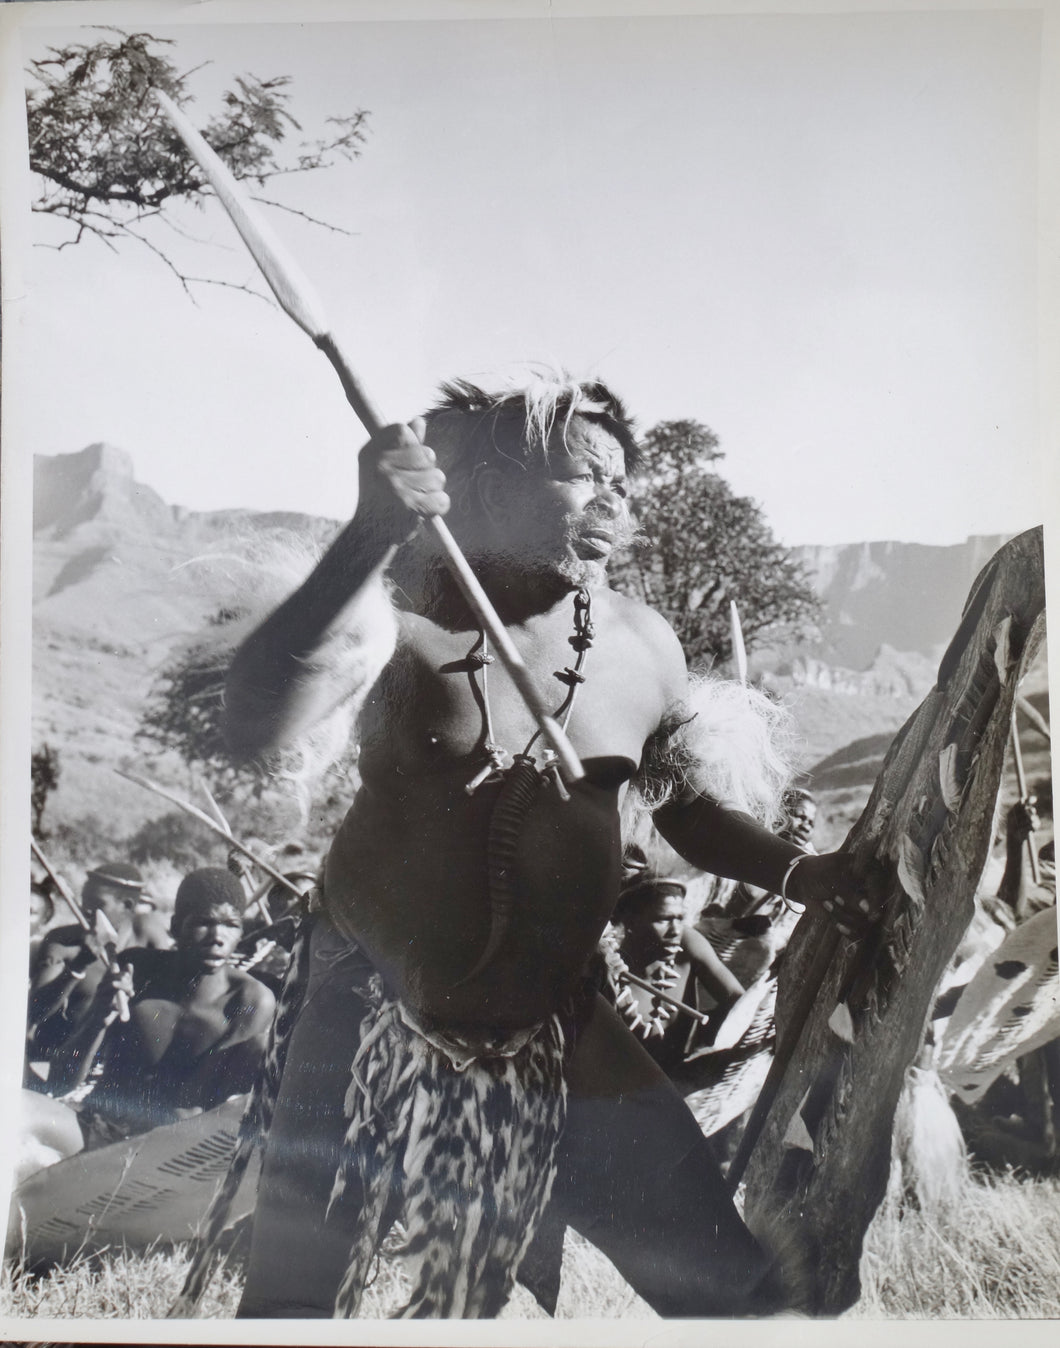 ZULU Movie Still - A very rare and striking image of a Zulu induna